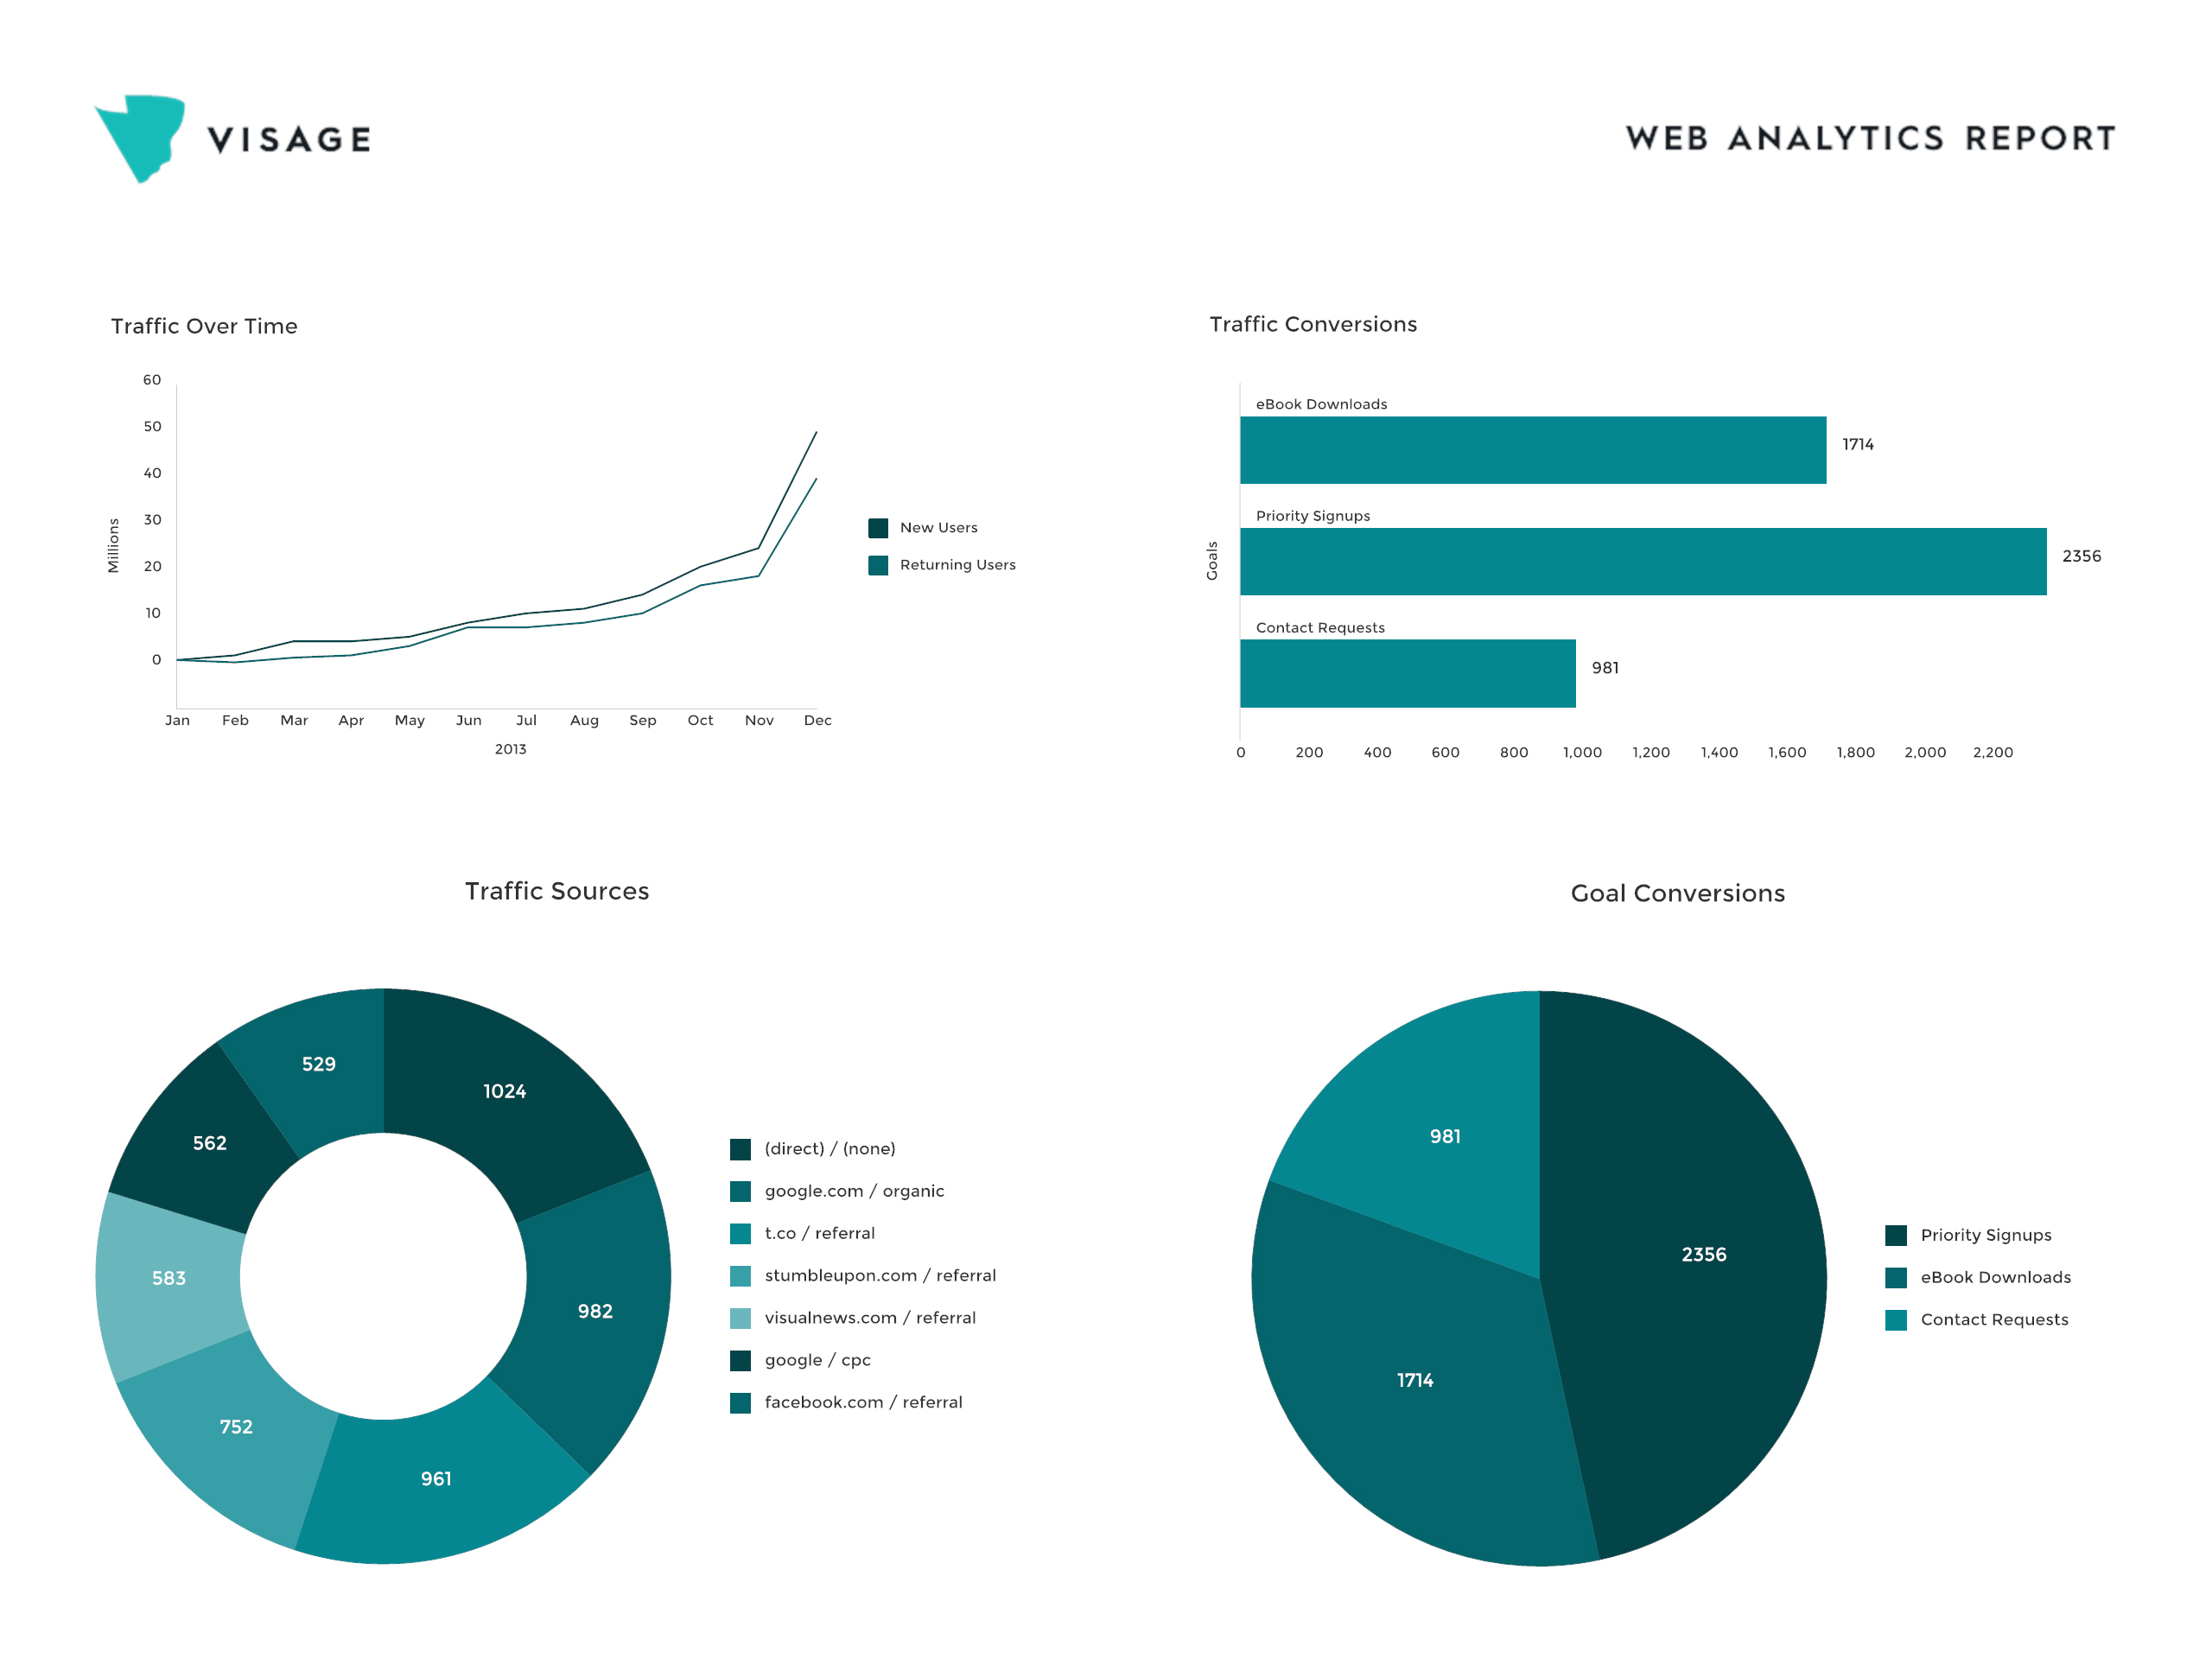 Visage_Web_Analytics_Report